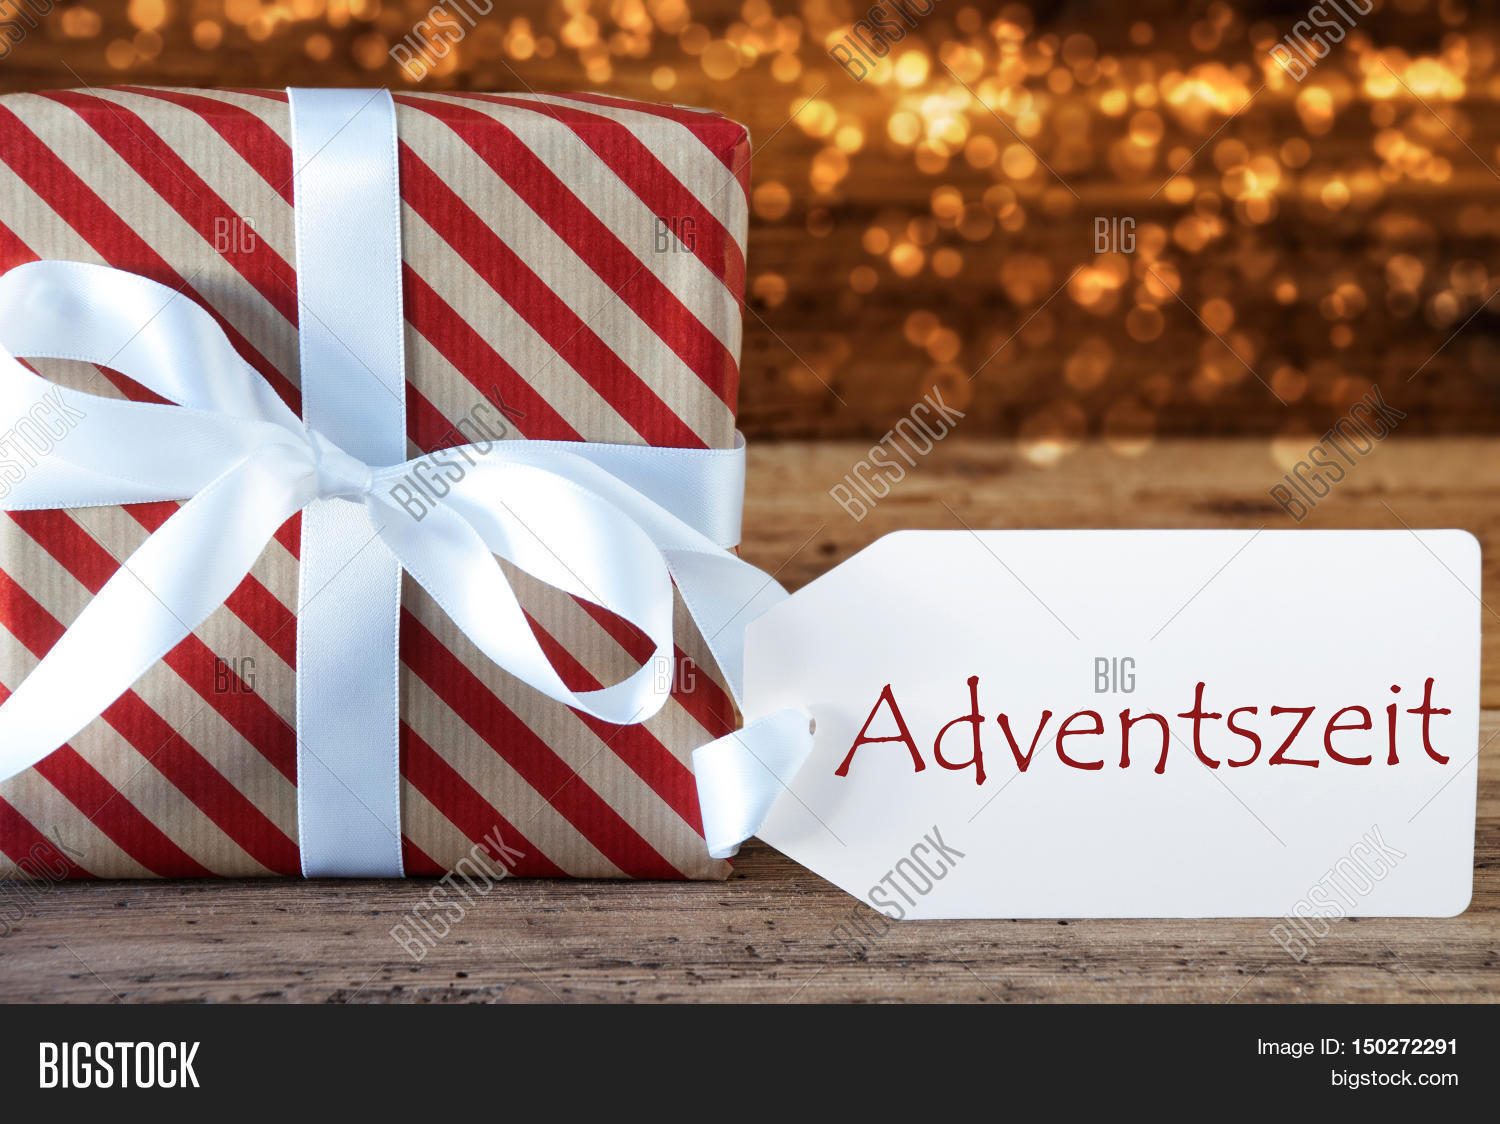 Macro christmas gift image photo free trial bigstock macro of christmas gift or present on atmospheric wooden background card for seasons greetings m4hsunfo